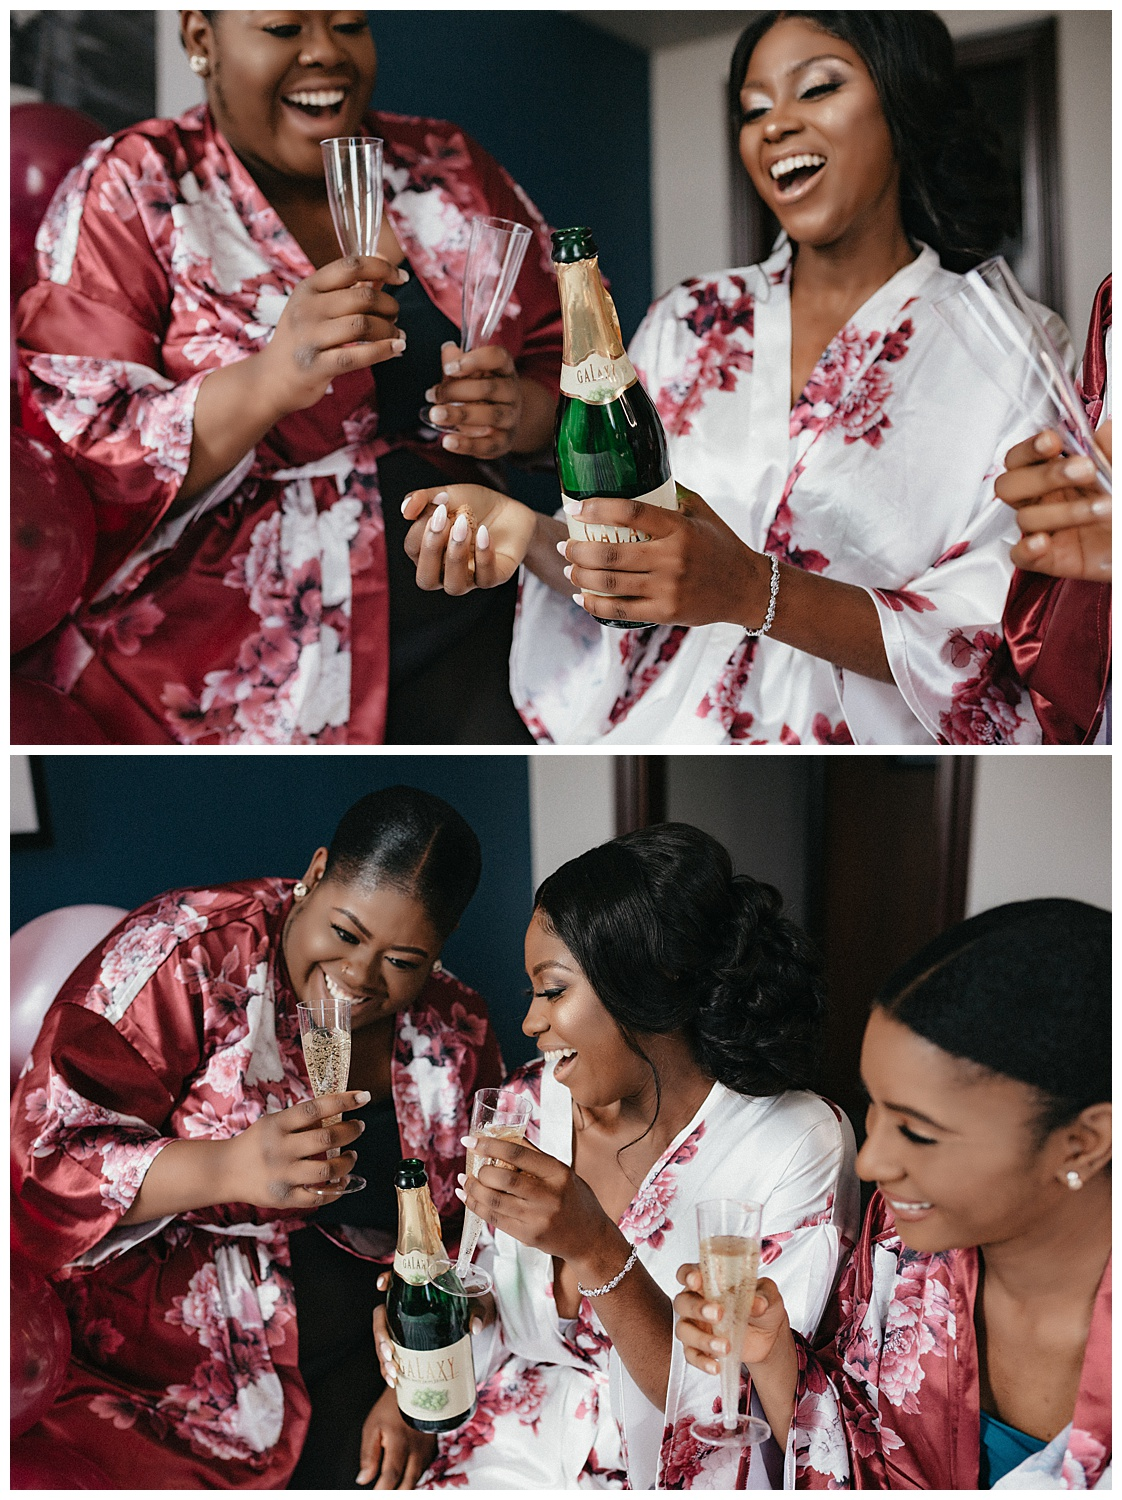 Bridesmaids drink champagne with the bride